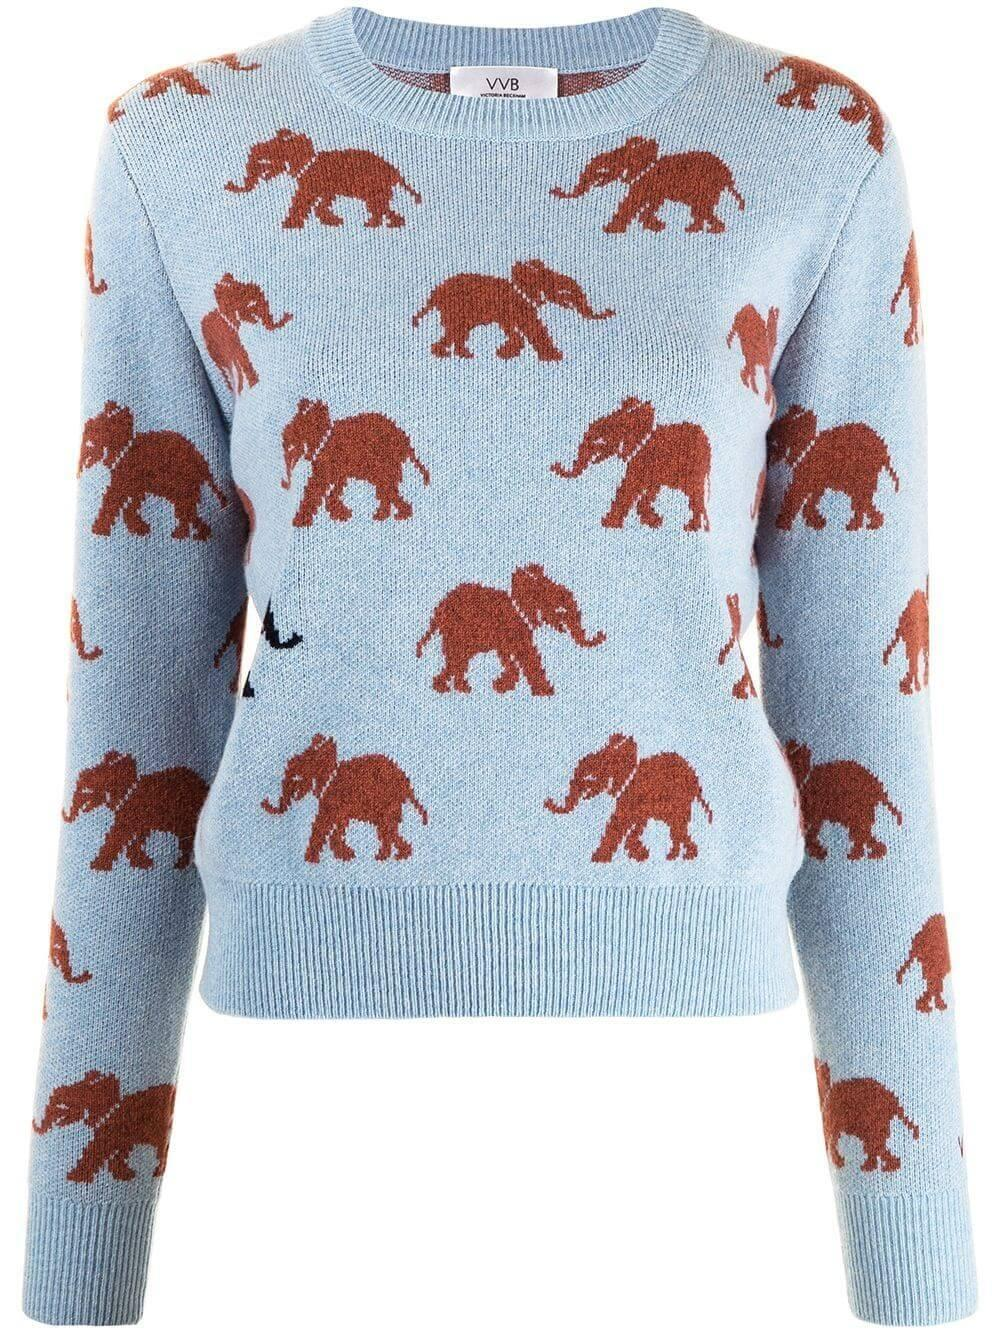 Elephant Intarsia Sweater